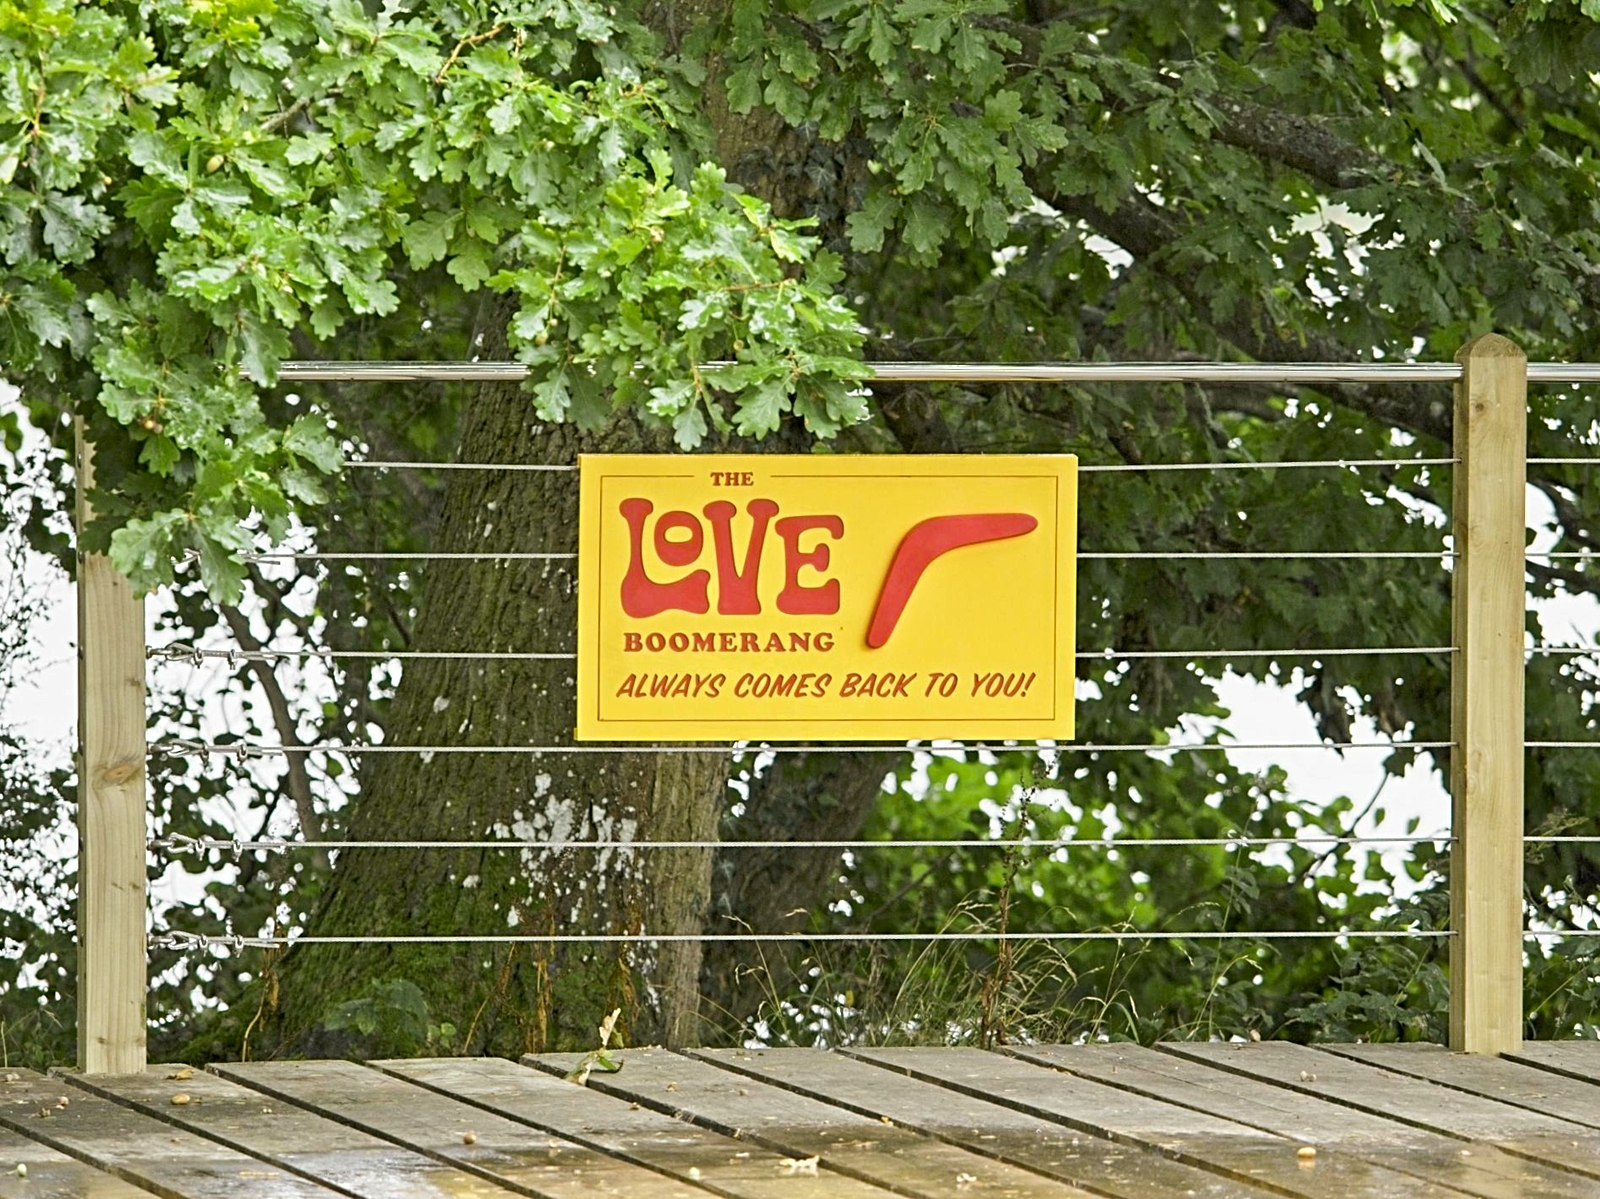 A wooden walkway with a wire and wooden fence along the side. Behind that are bushes and trees. On the wires lining the path is a yellow sign with red writing saying